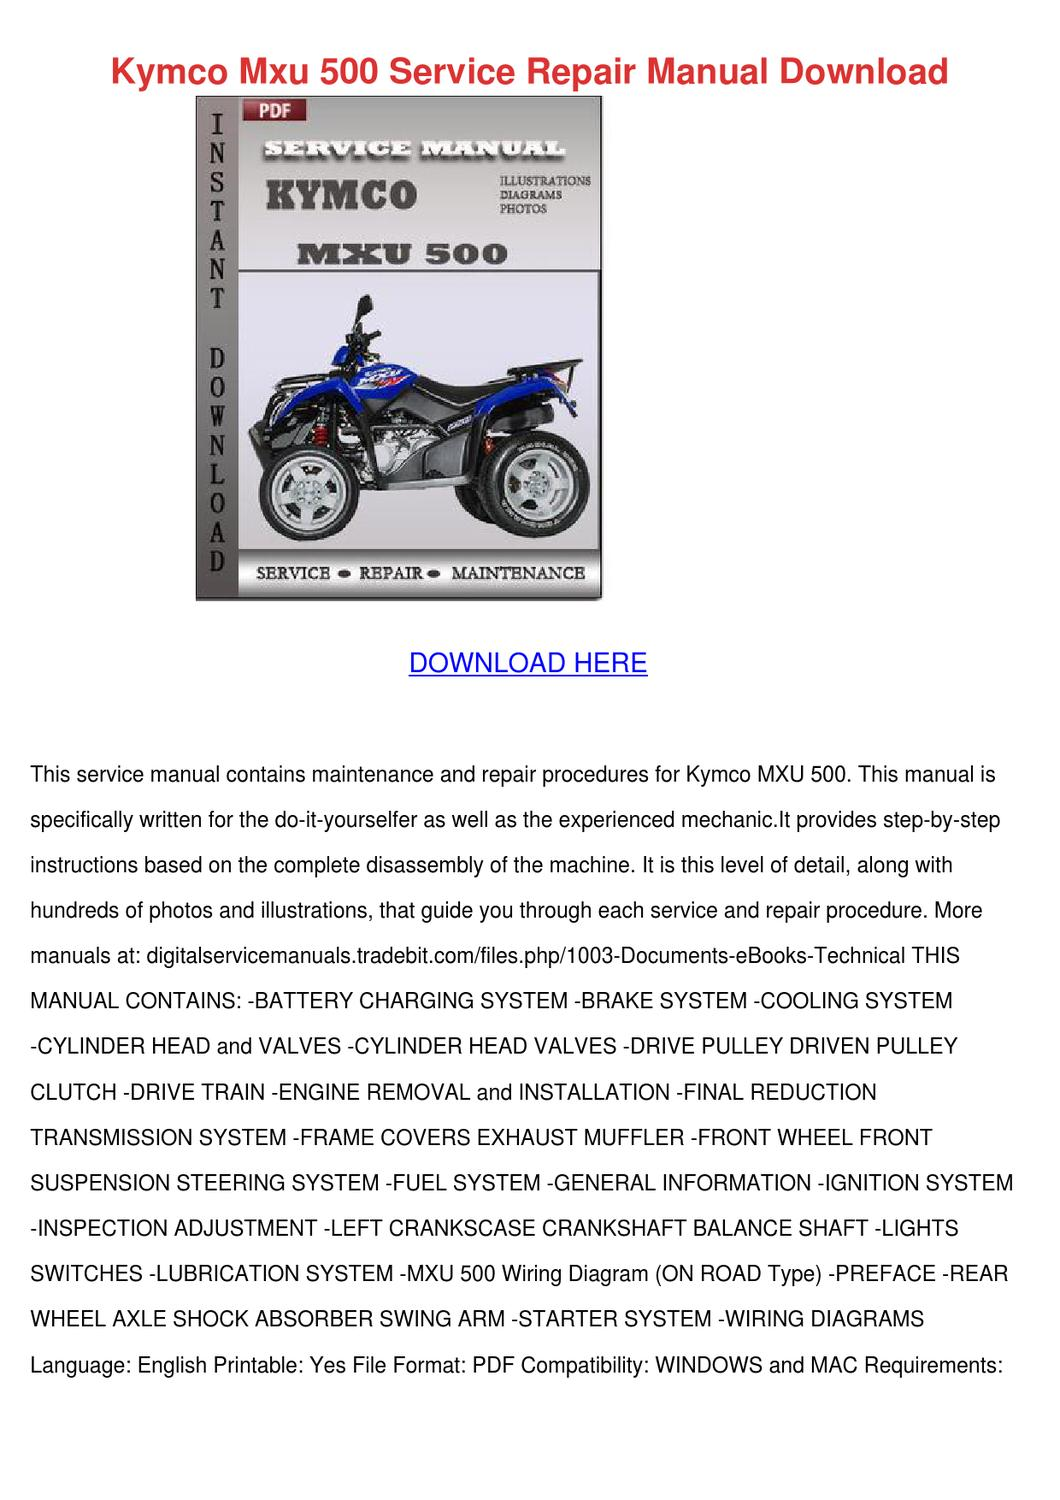 Kymco Mxu 50 Wiring Diagram Circuit And Hub Agility 125 500 Service Repair Manual Download By Terrysasser Issuu Rh Com Light Jonway Scooter